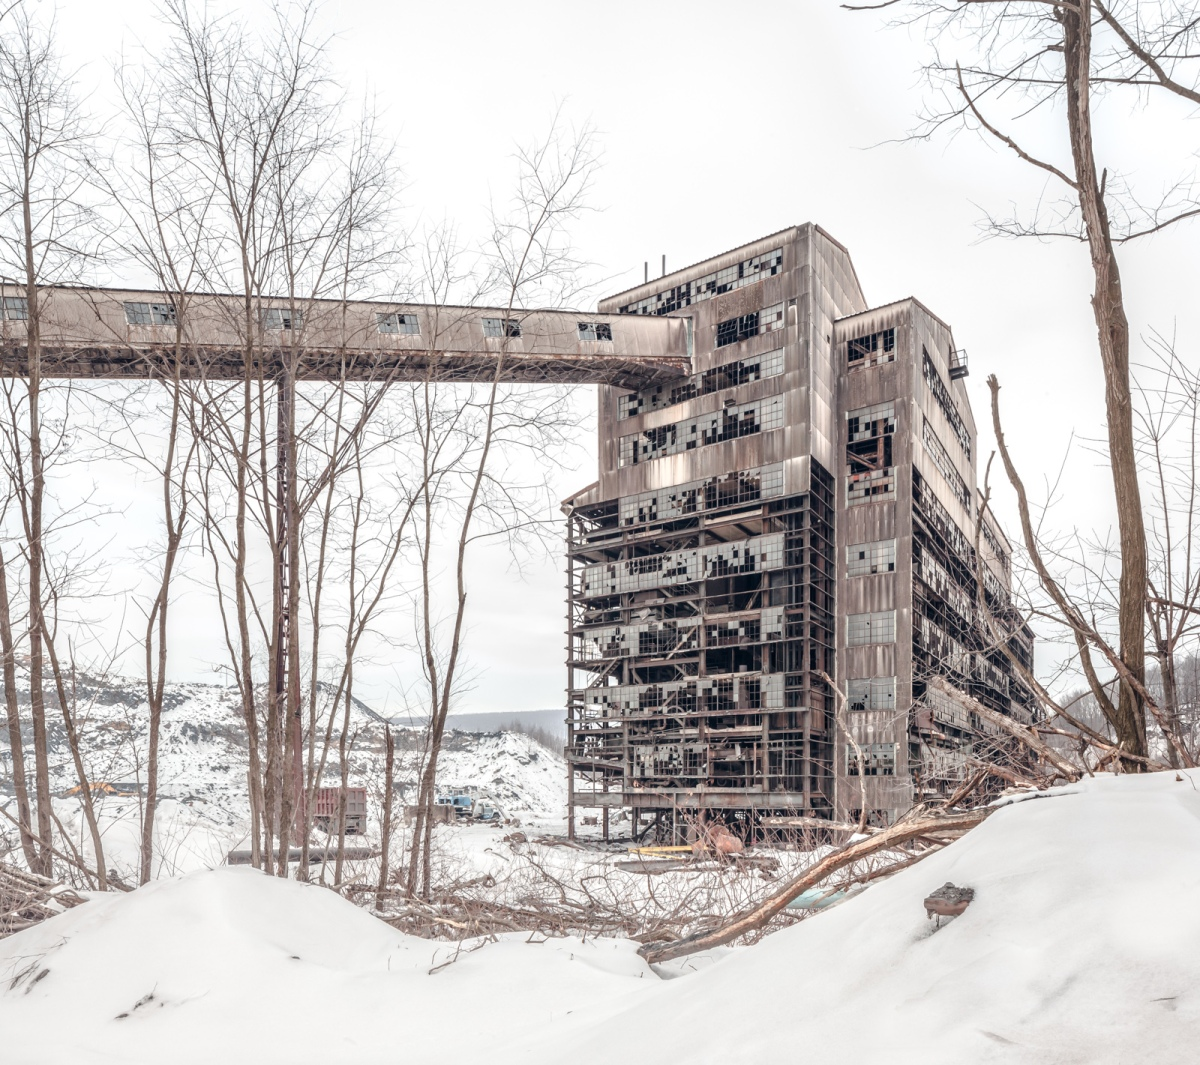 A Wintry Return To The St. Nicholas Coal Breaker